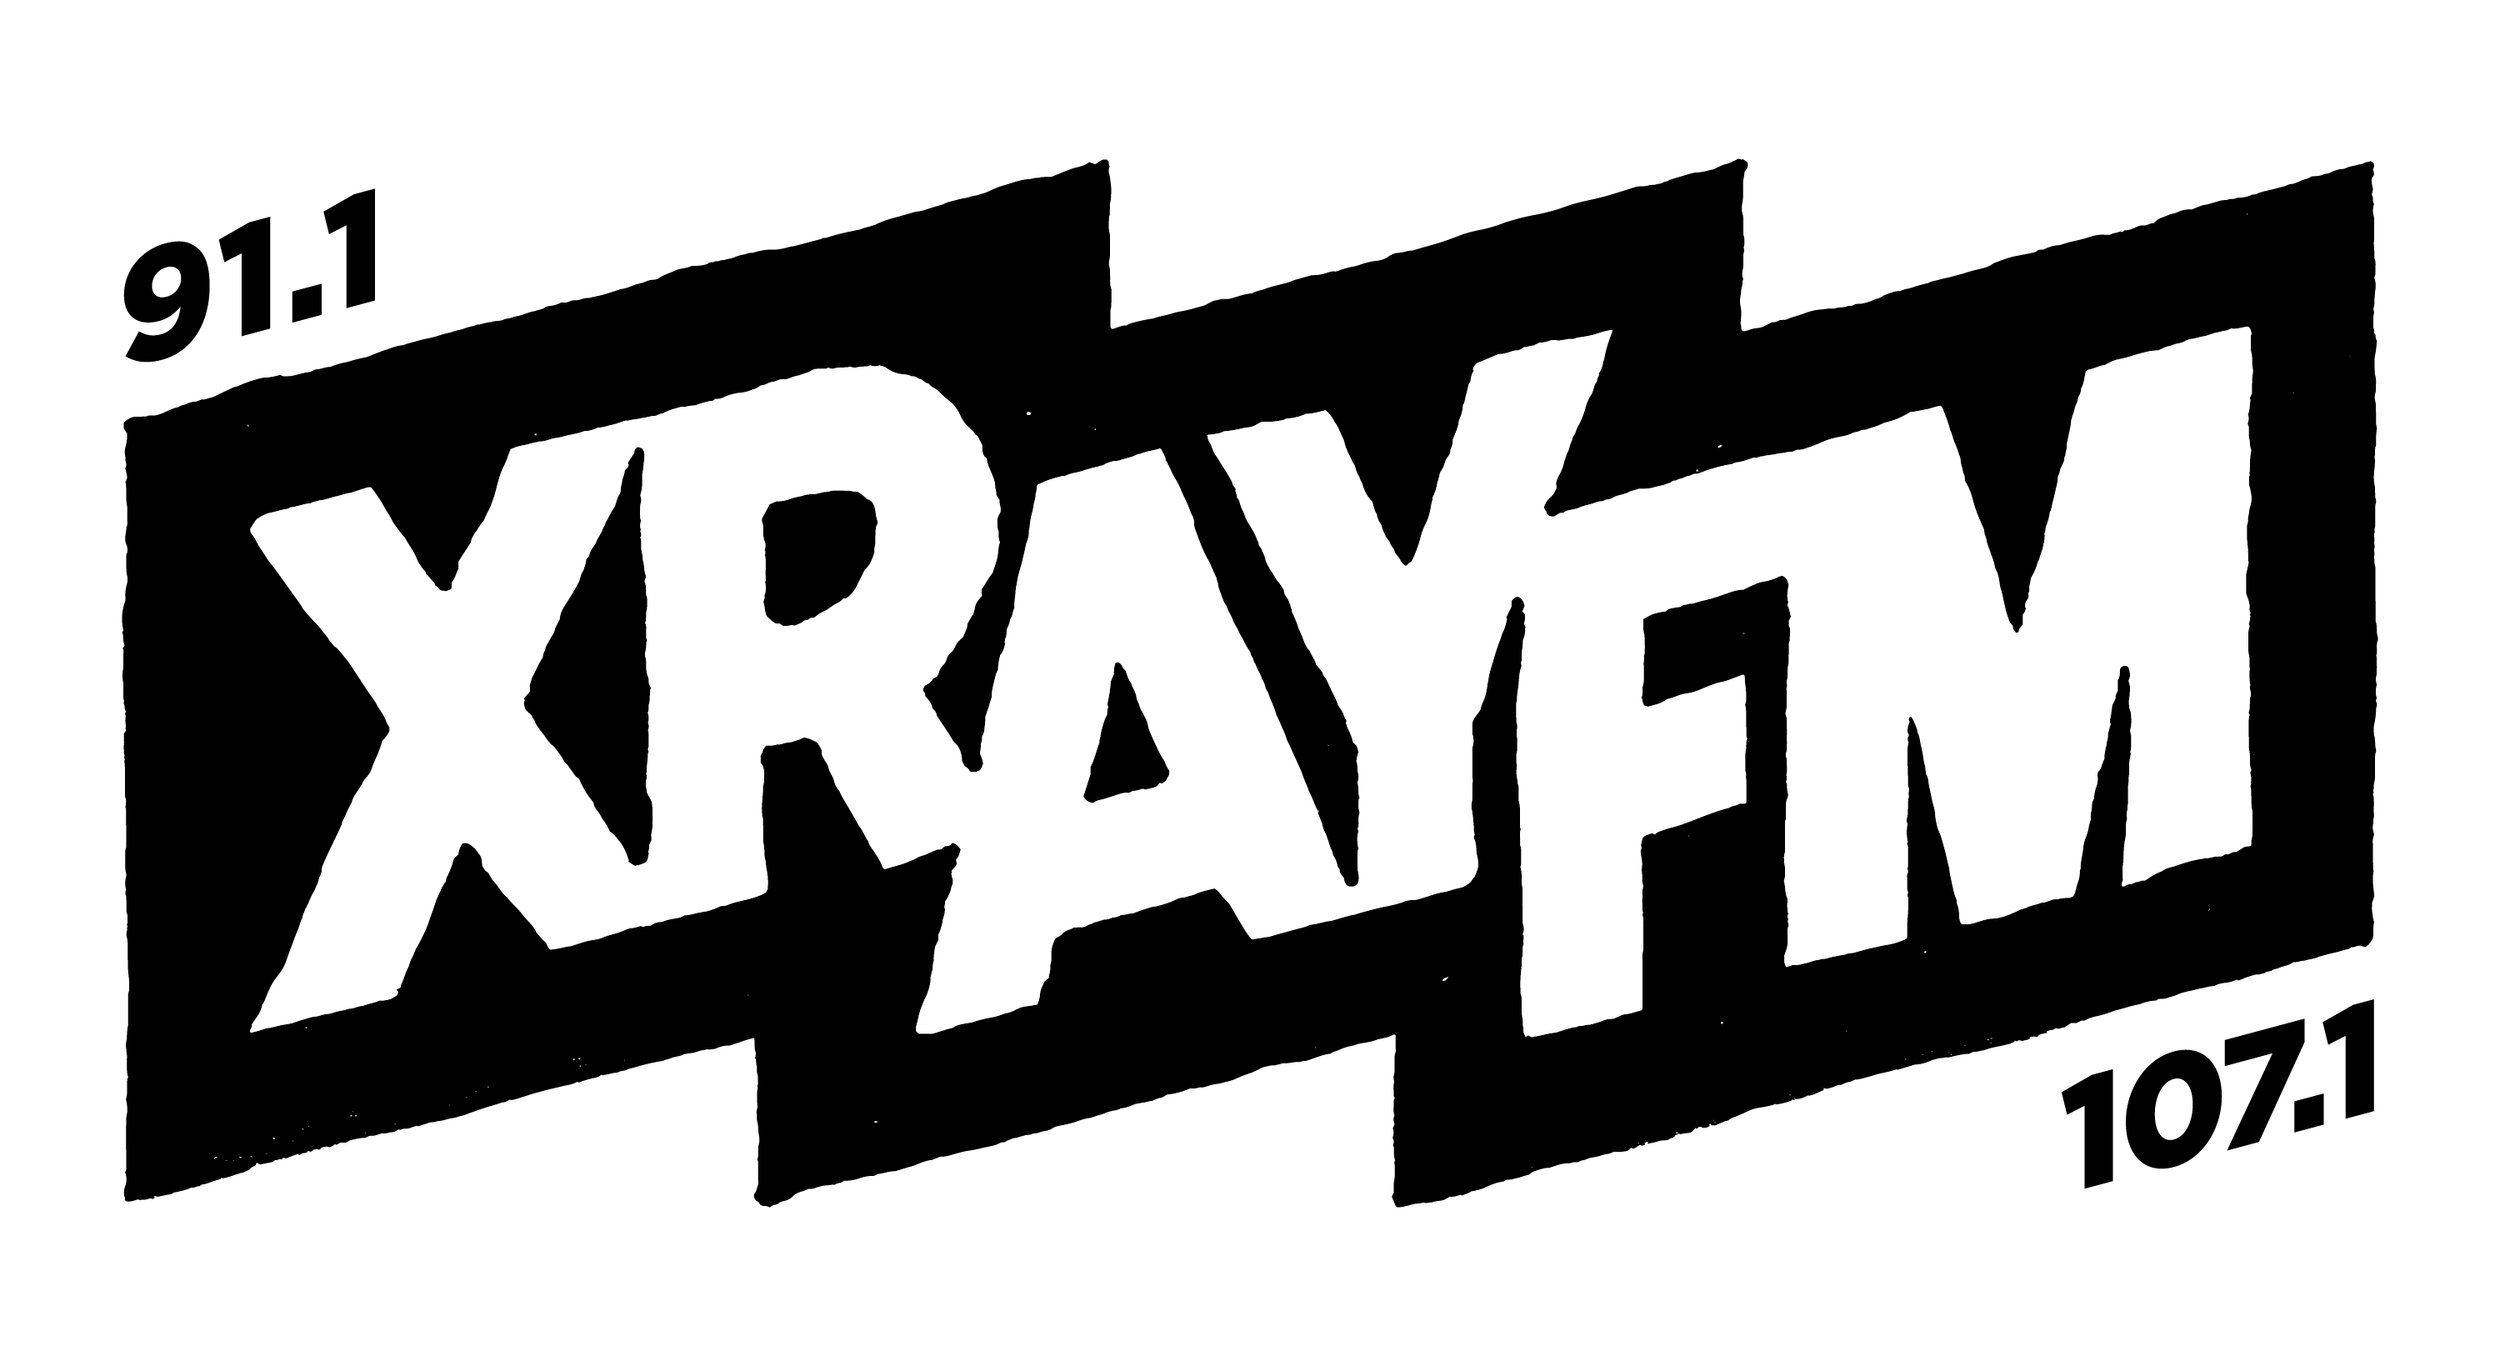 XRAY Radio - Our mission is to hold a microphone up to the best and most distinctive of Portland. To build a culturally relevant center for ideas, music, and creativity in service of a more open media and a more just community.Our programming features local thinkers, comedians, journalists, and commentators. That funny comic who split your side at the club. That local business leader. The community organizer you heard at the rally. The elected leader you wonder about.We look at matters from multiple angles, we seek truth and a better community...and fun. We want to give everyone a fair shake; we are also a values-driven organization. We don't think climate change is only half real, we're not only half in favor of marriage equality, and we don't think inequities or wealth disparities are only half a problem.Radio is yours. We are honored to bring you some.https://xray.fm